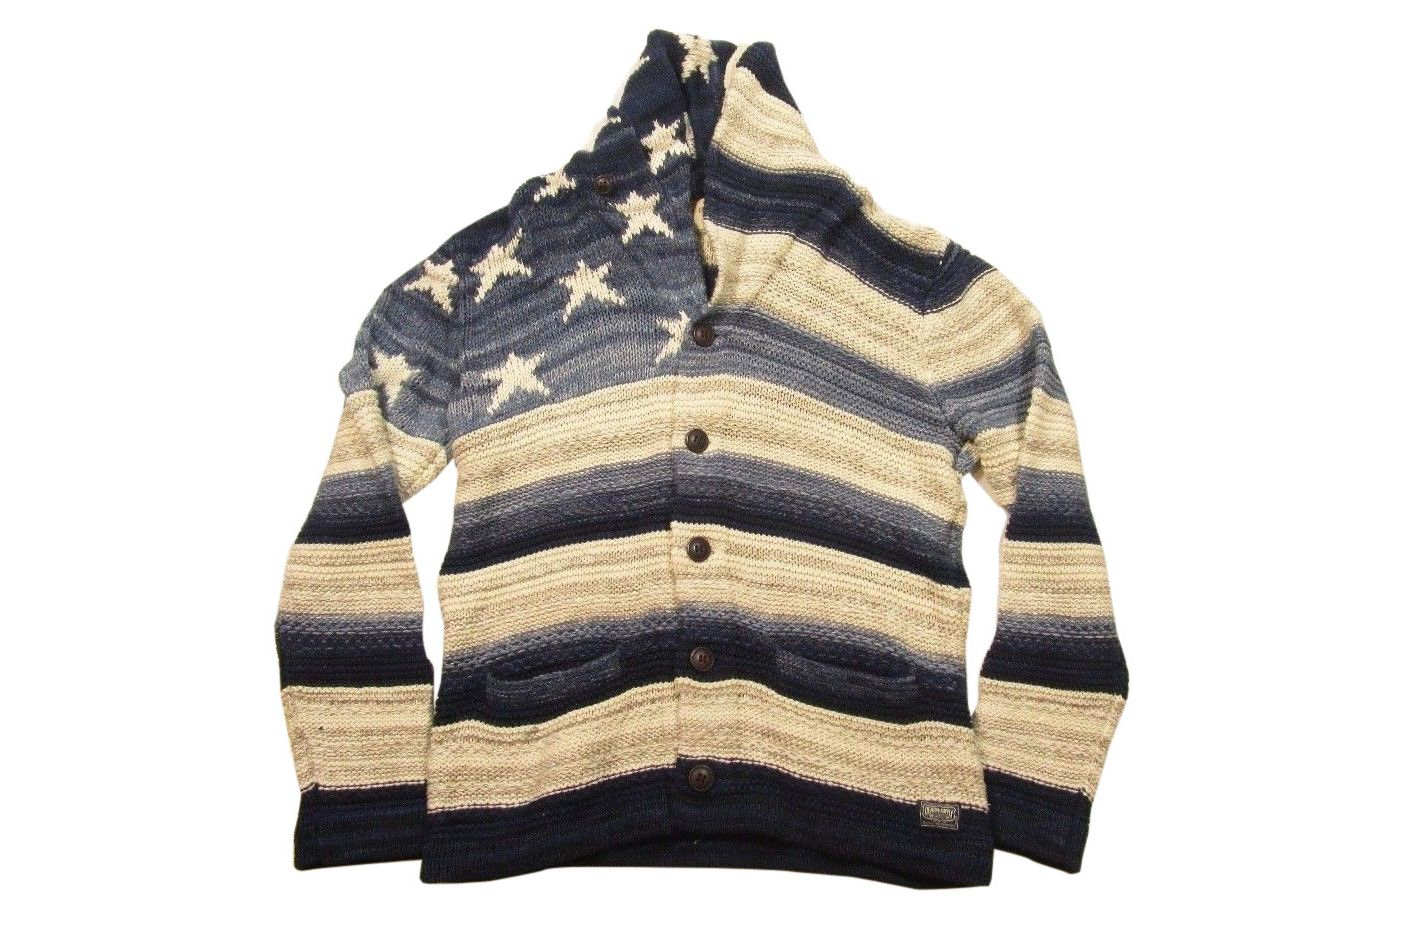 Ralph Lauren Denim & Supply Men's Flag Graphic Blue Striped Cardigan Sweater